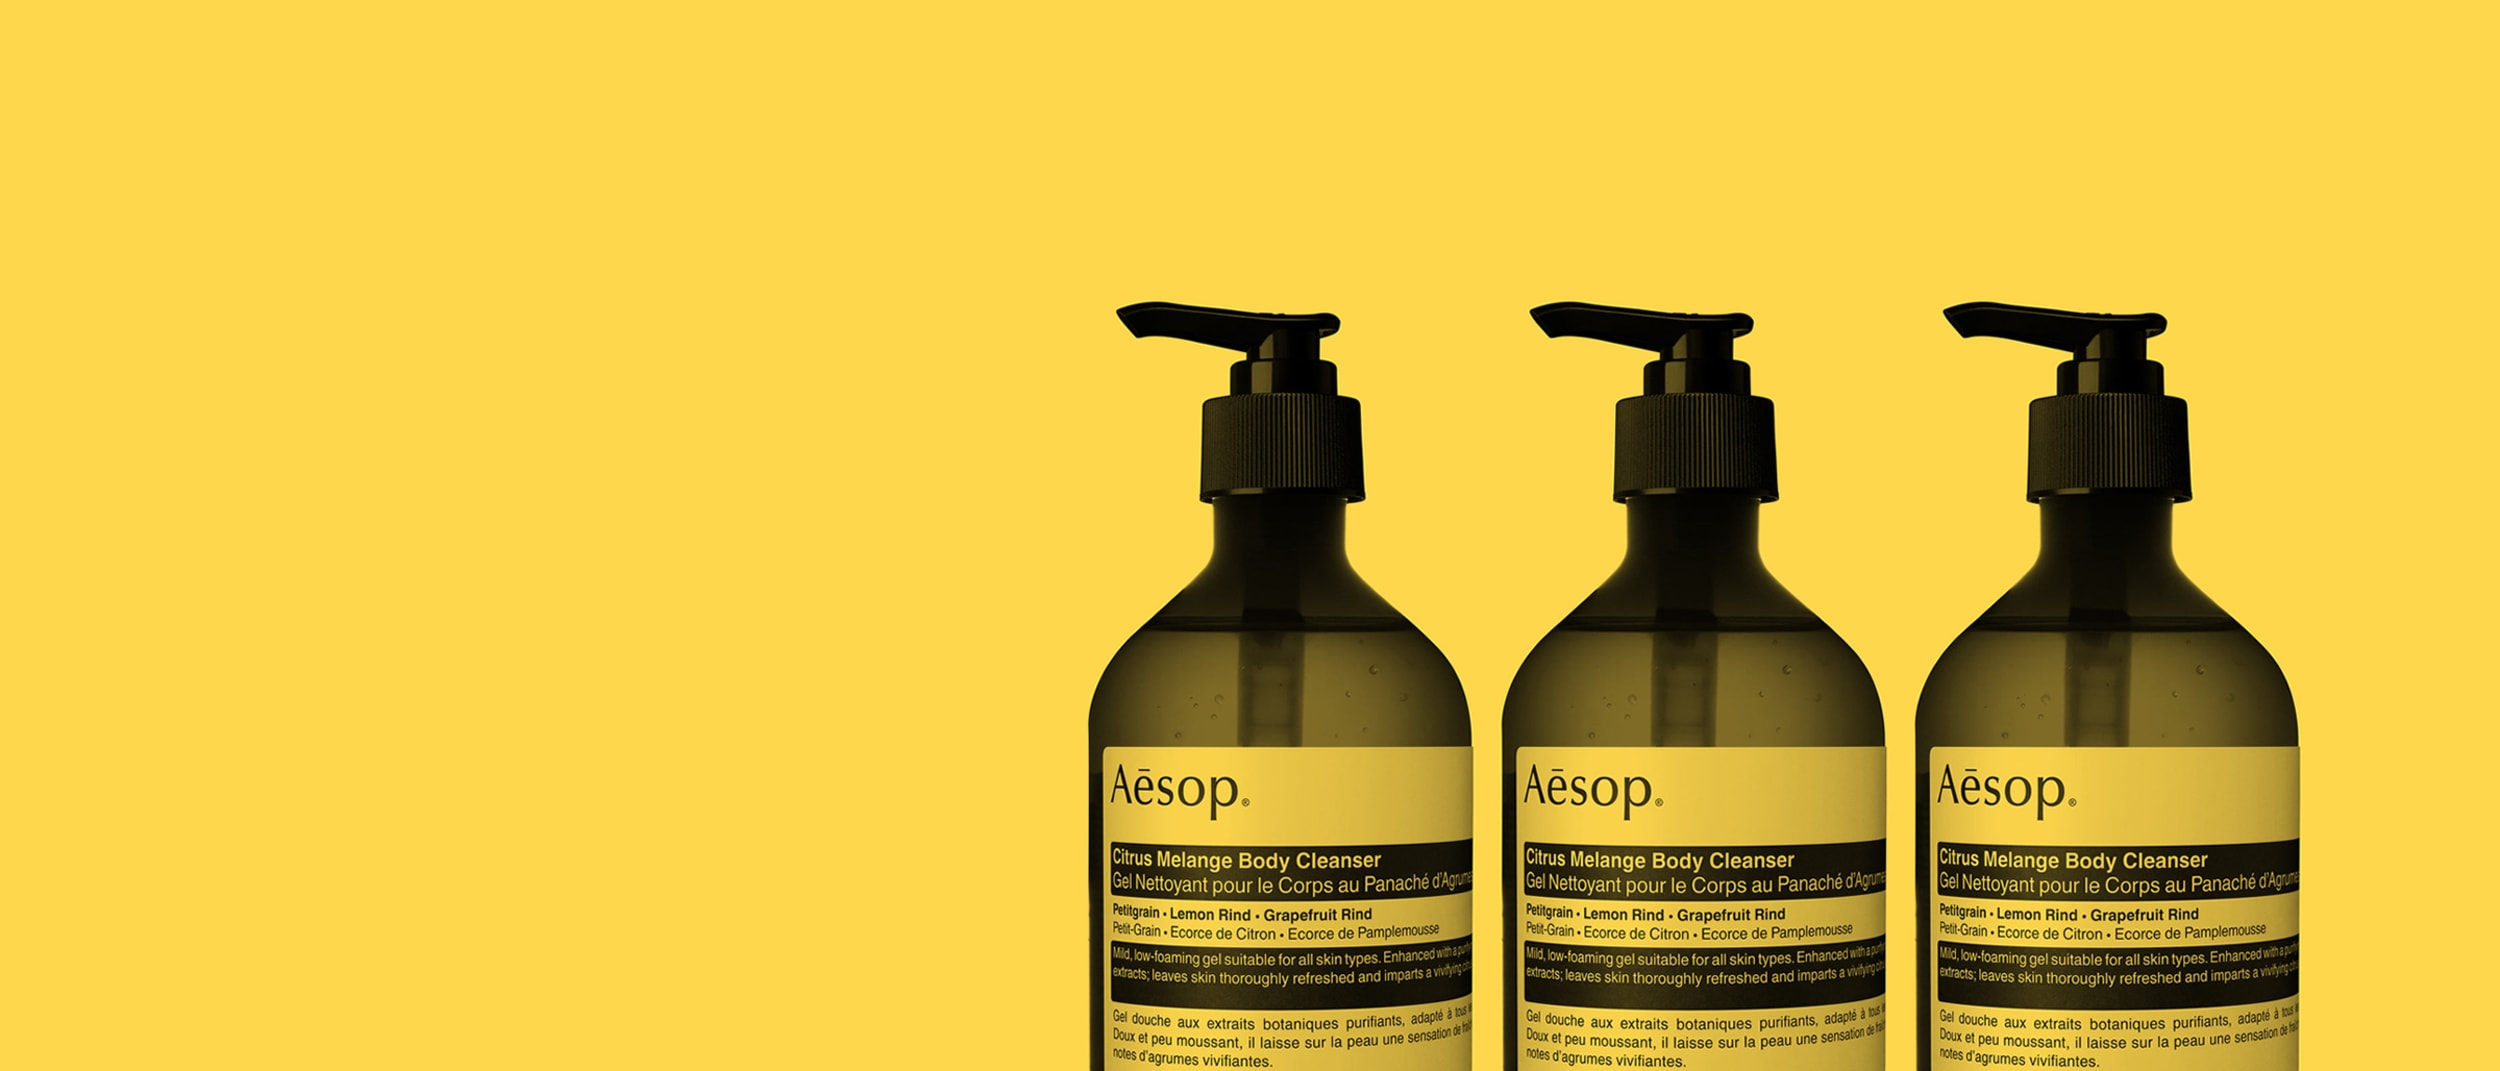 Introducing Aesop's new zesty Citrus Melange Body Cleanser